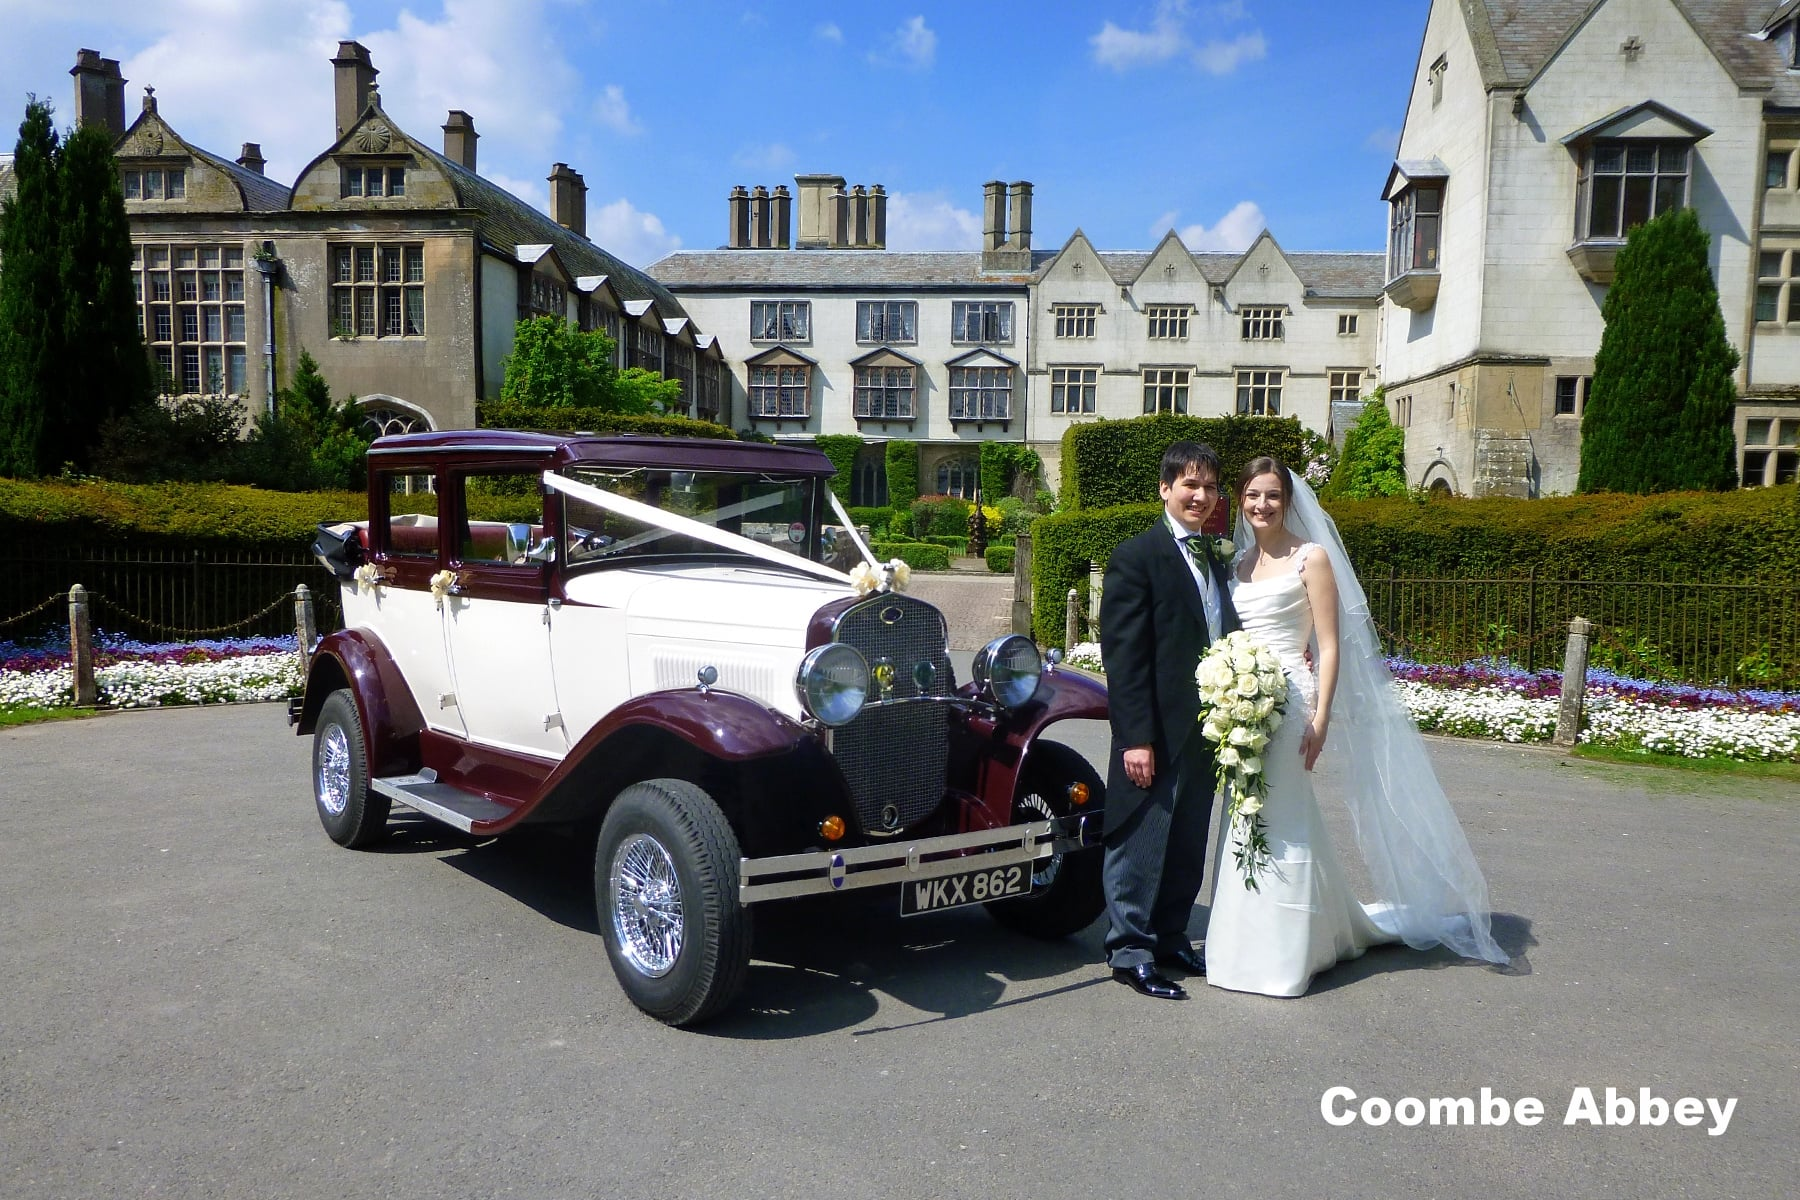 Coombe Abbey Hotel, Brinklow nr. Coventry